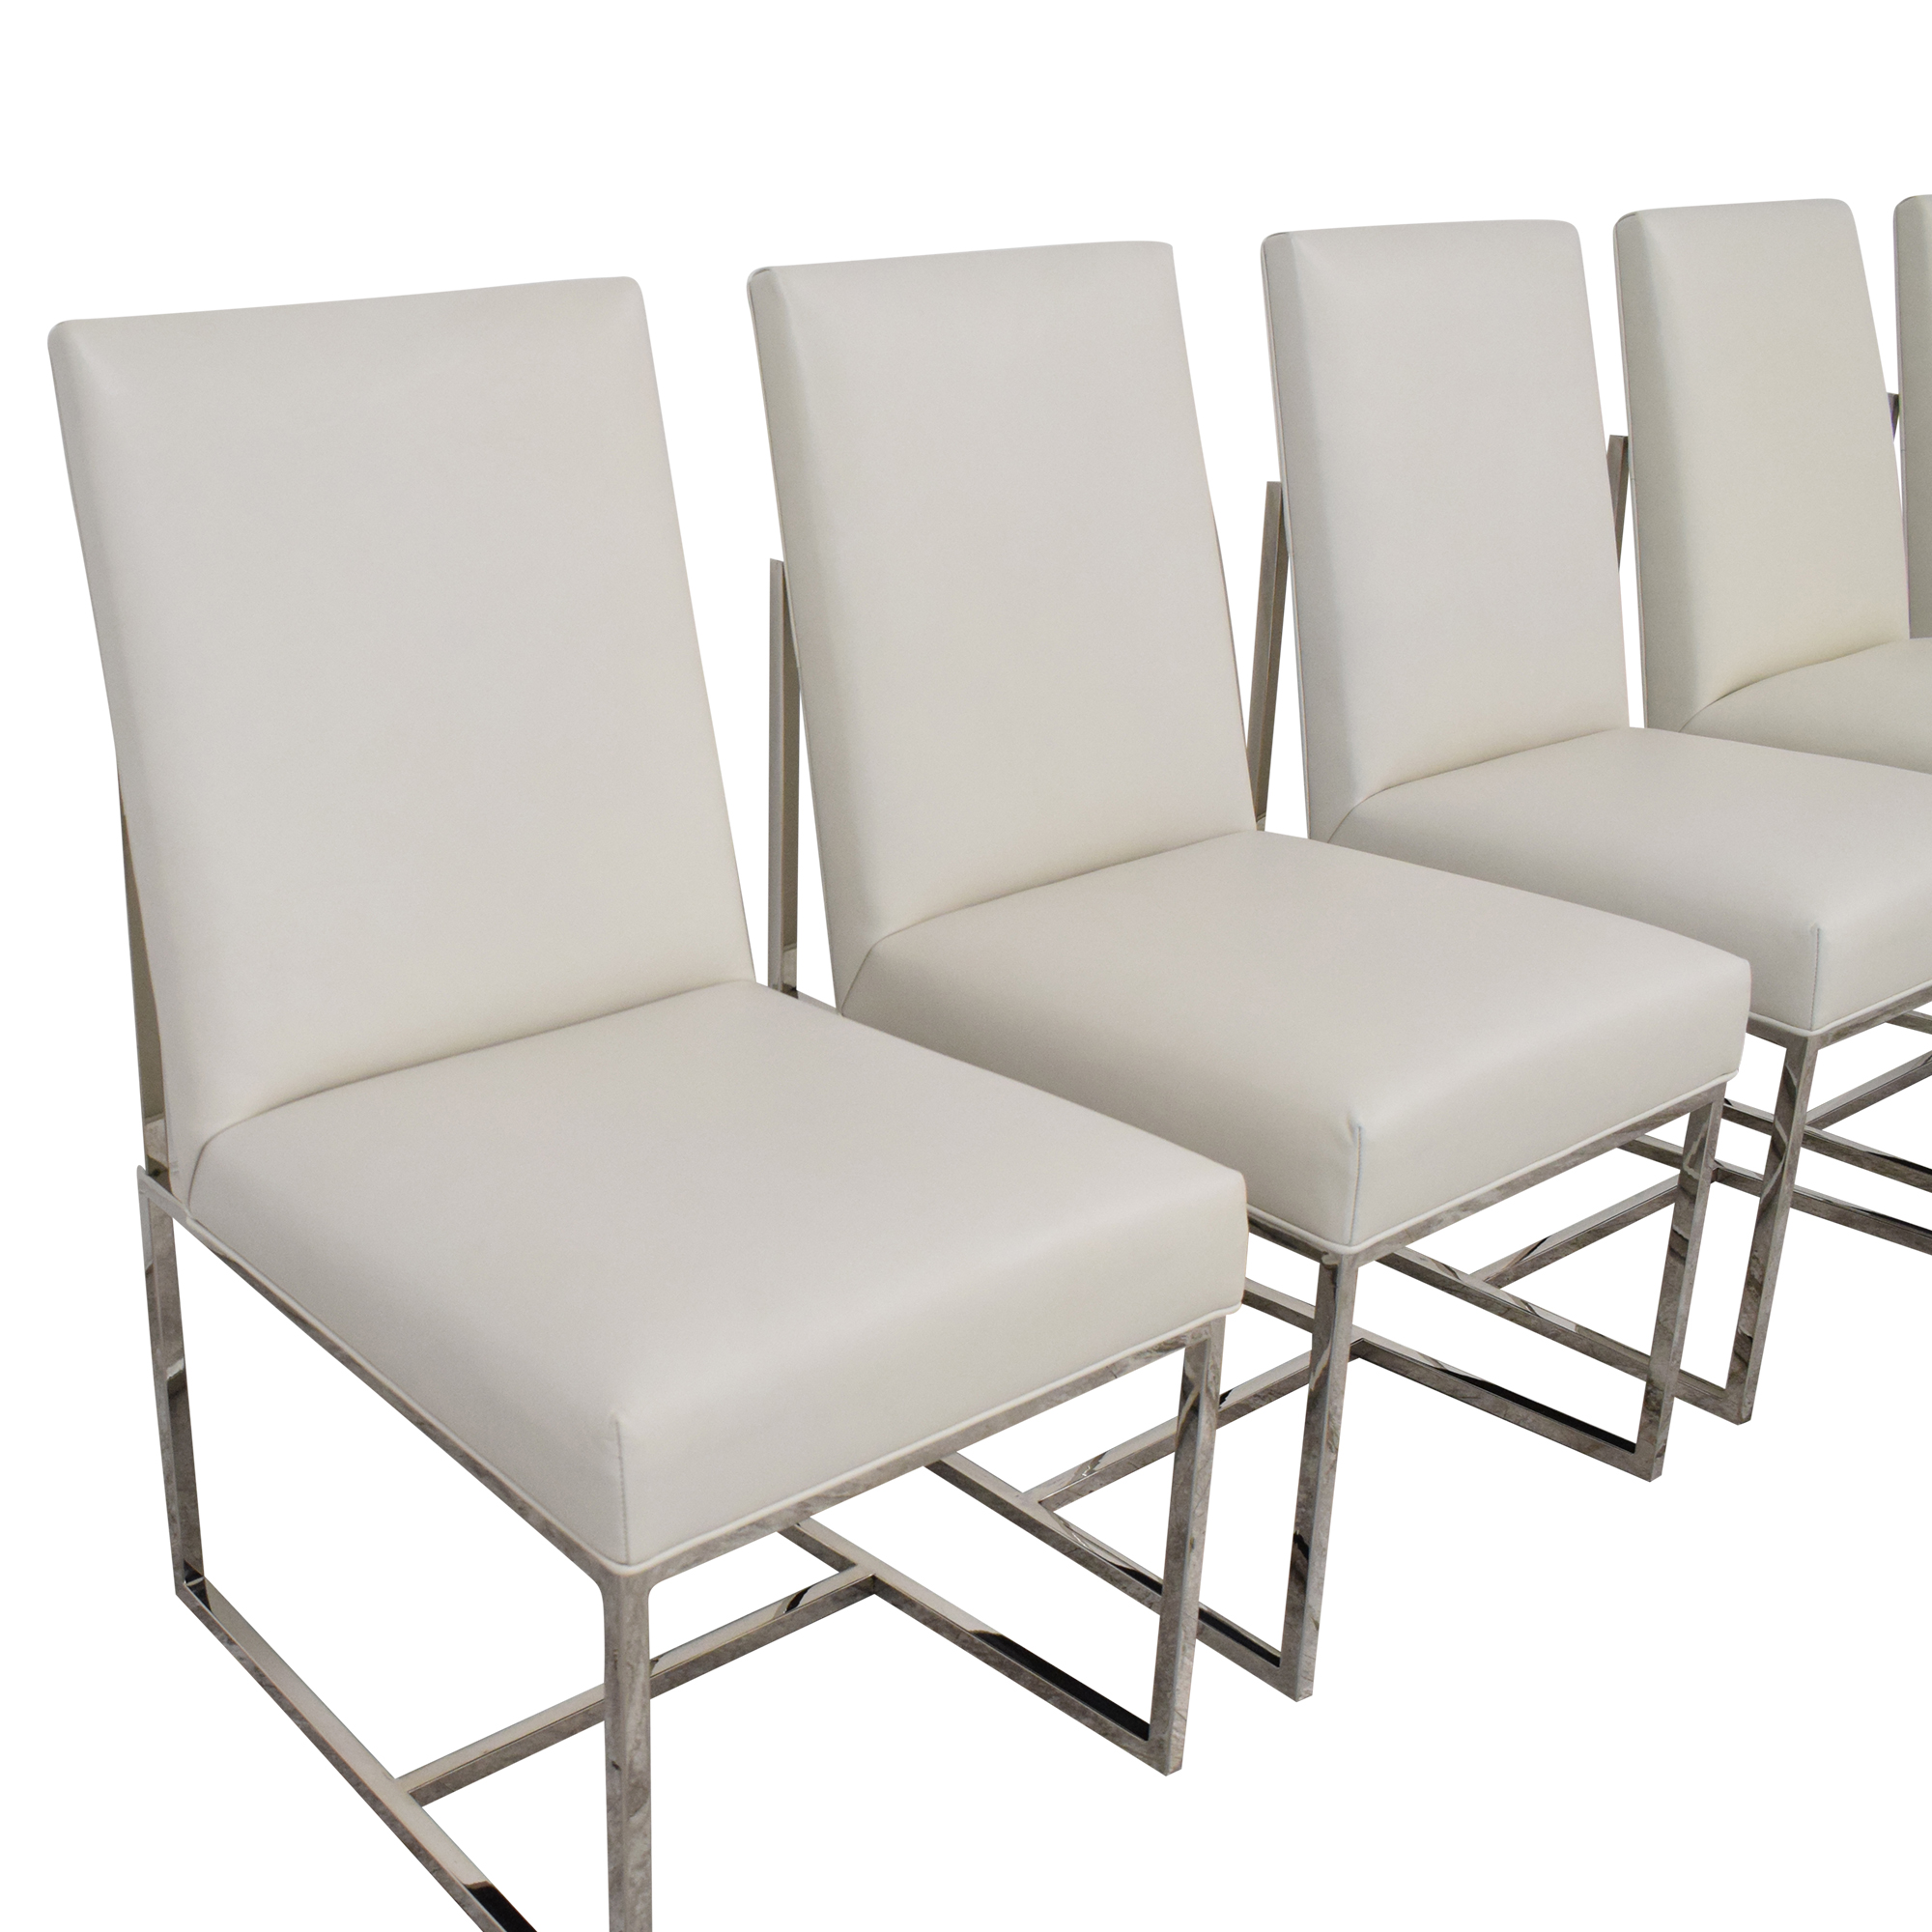 Restoration Hardware Restoration Hardware Grant Leather Side Chairs coupon